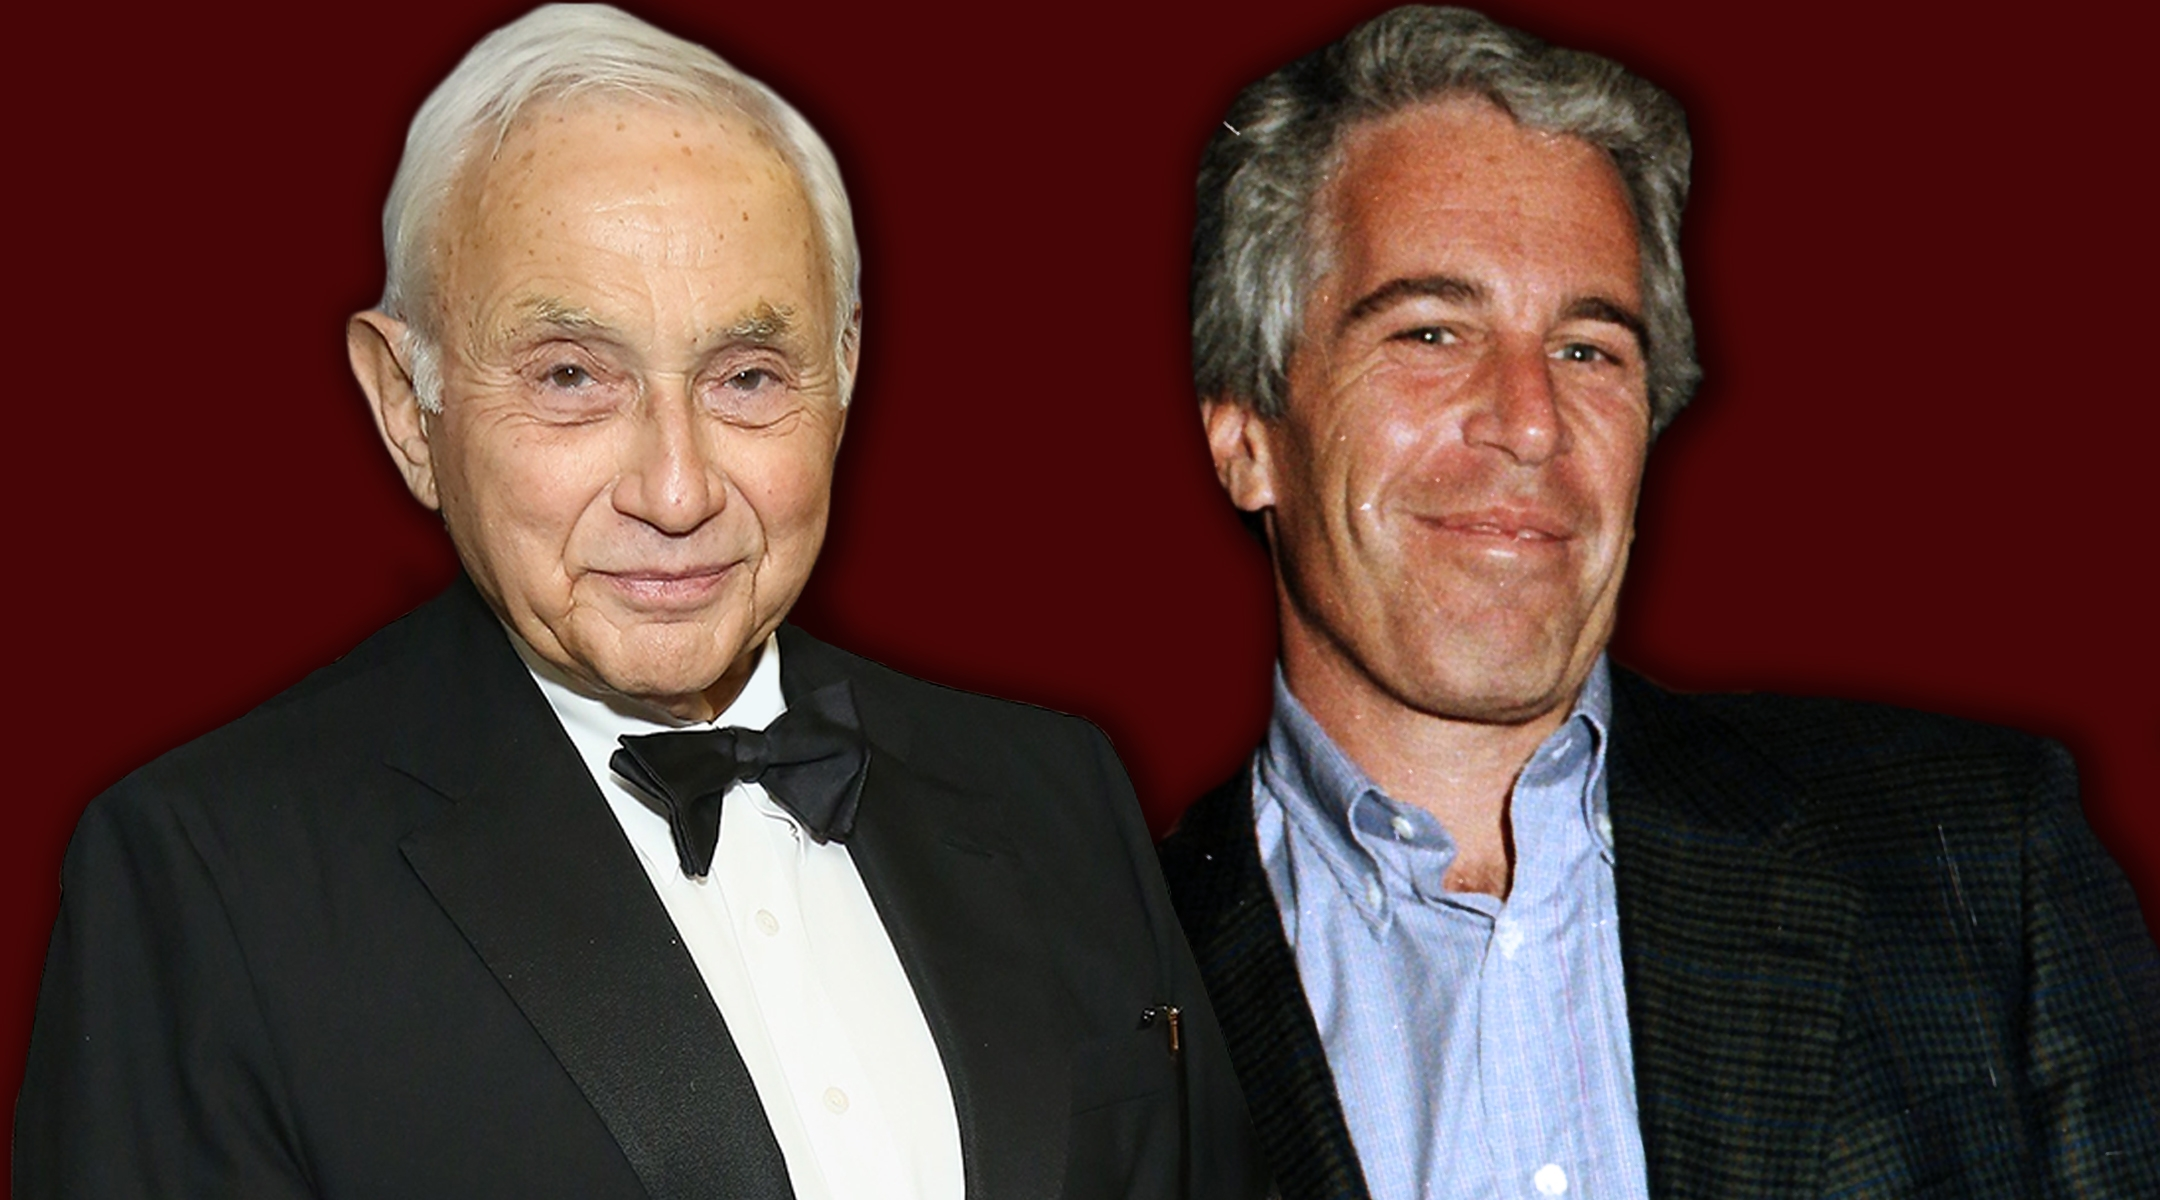 Jeffrey Epstein and billionaire Leslie Wexner were close for years. Now Epstein's scandal is dogging Wexner. (Laura E. Adkins/Getty Images)